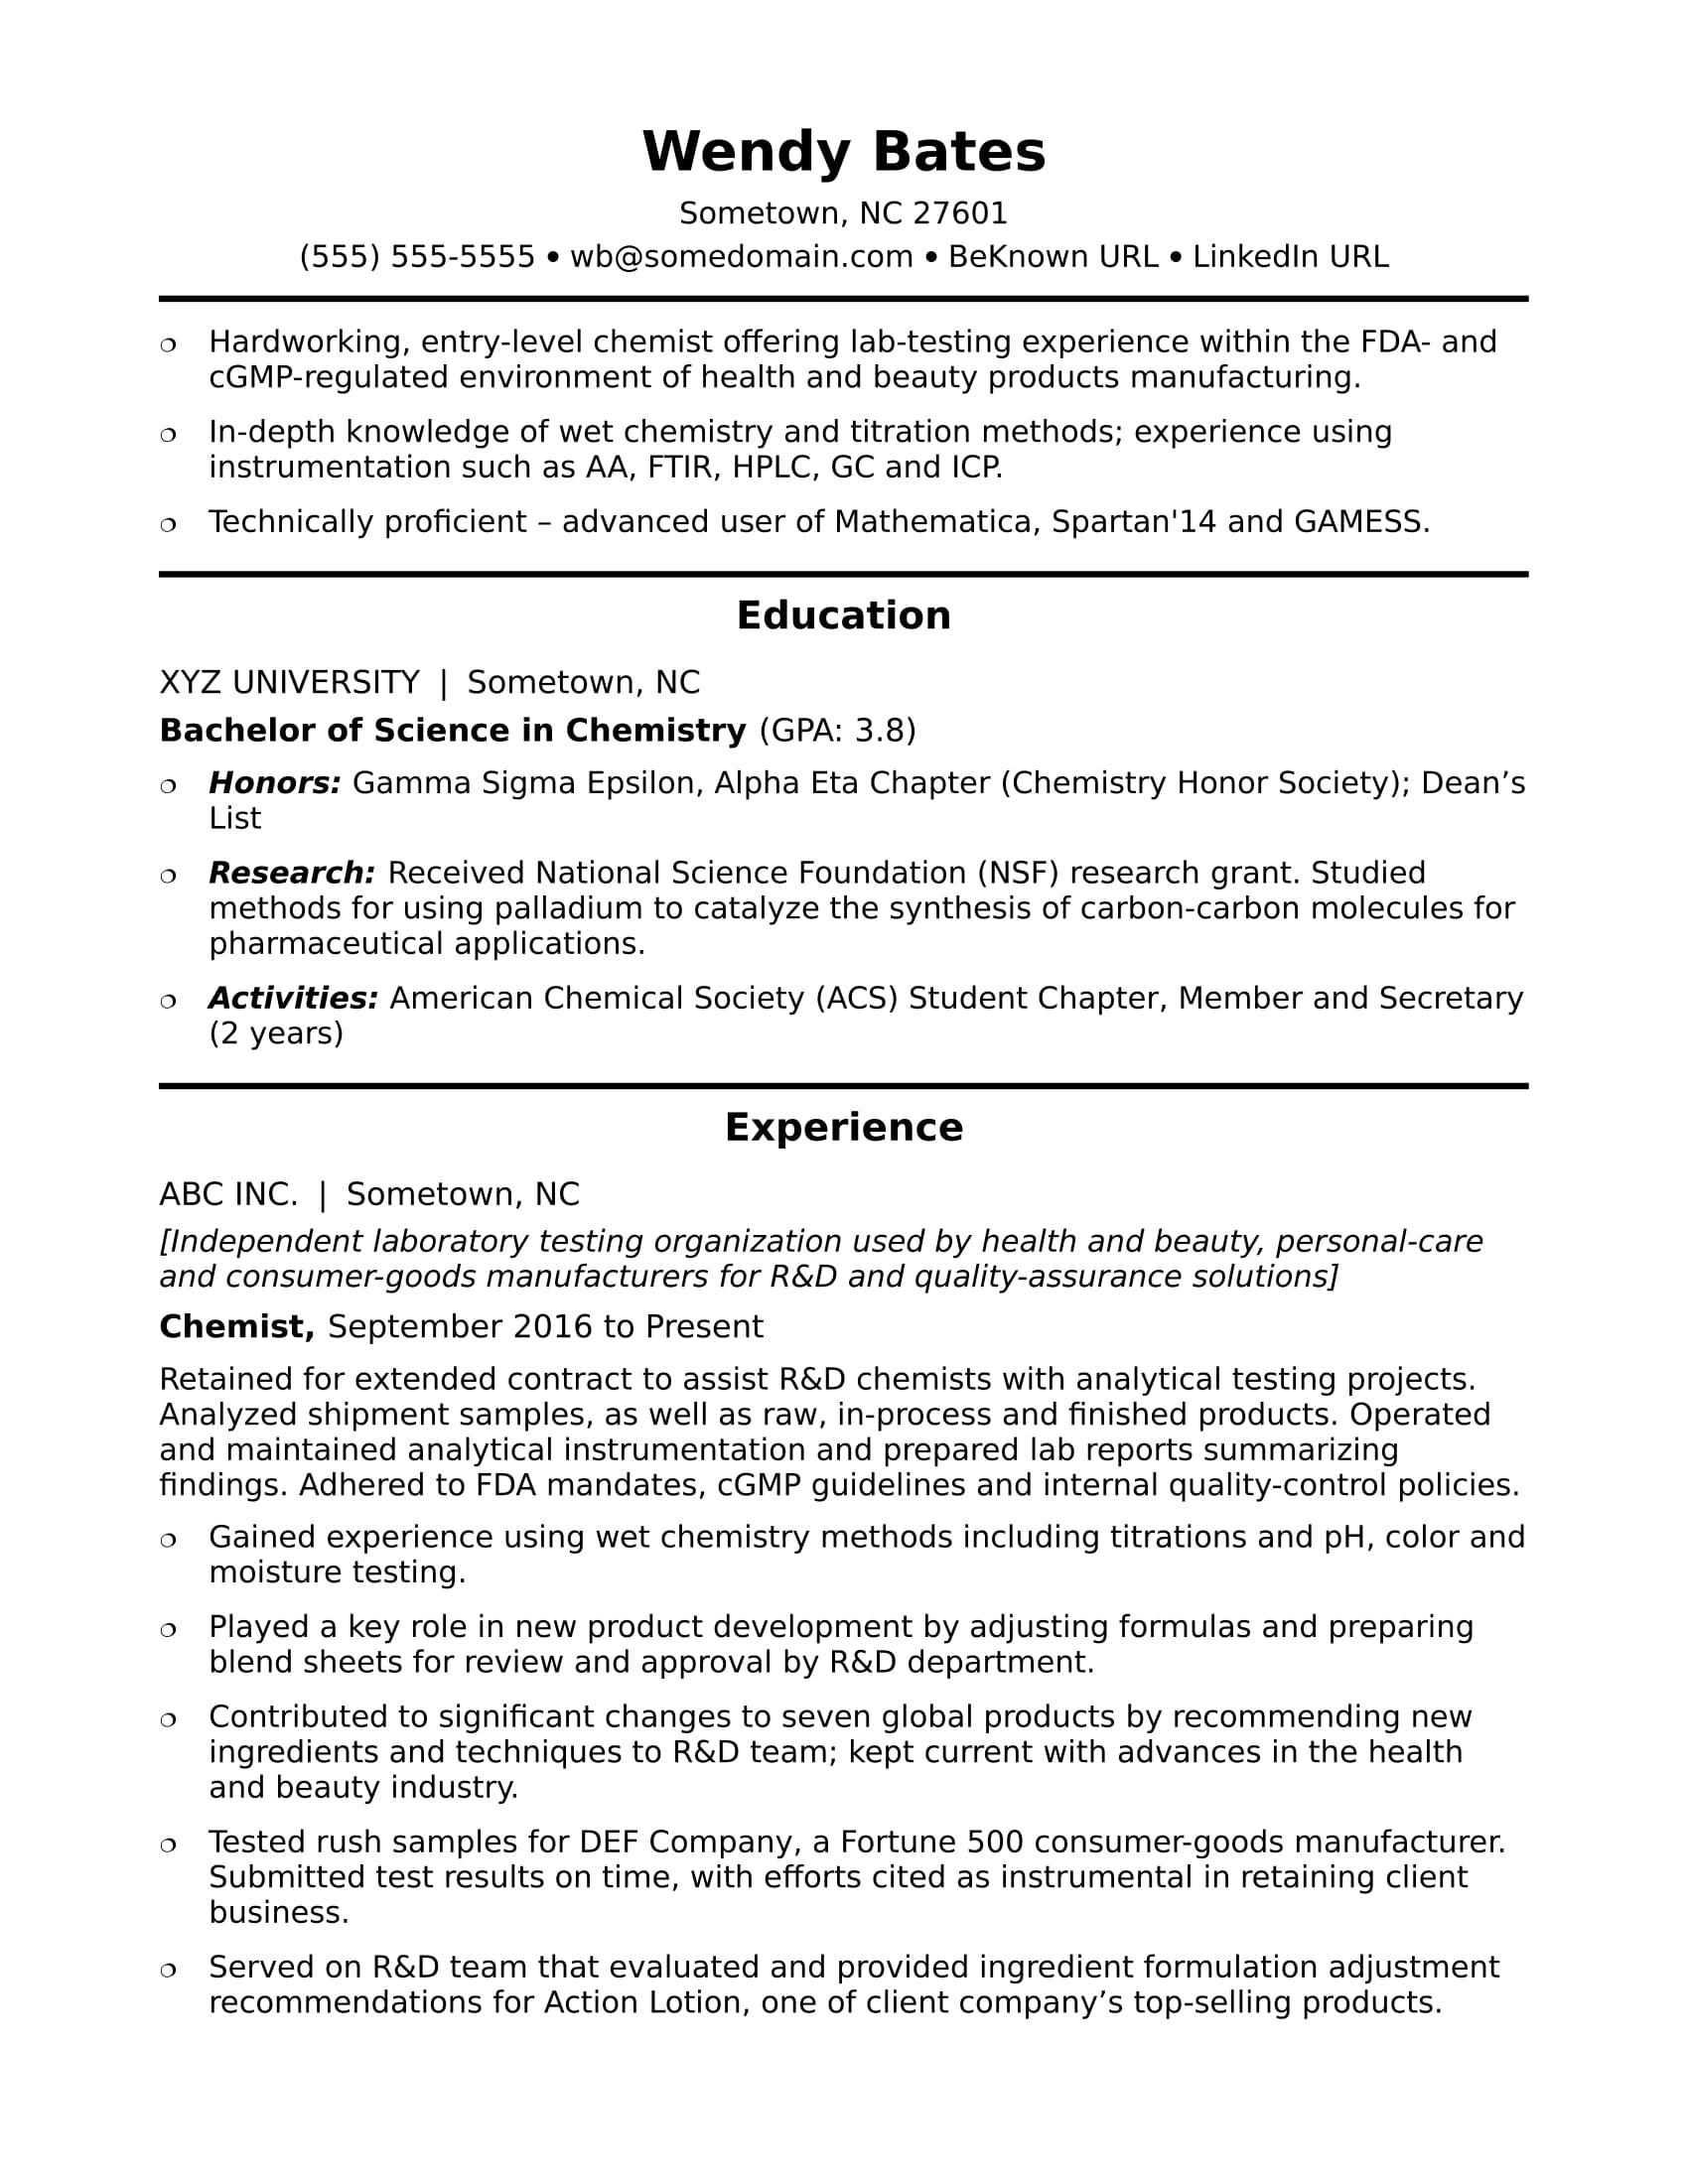 Sample Resume For An Entry Level Chemist  Sample Resume Entry Level